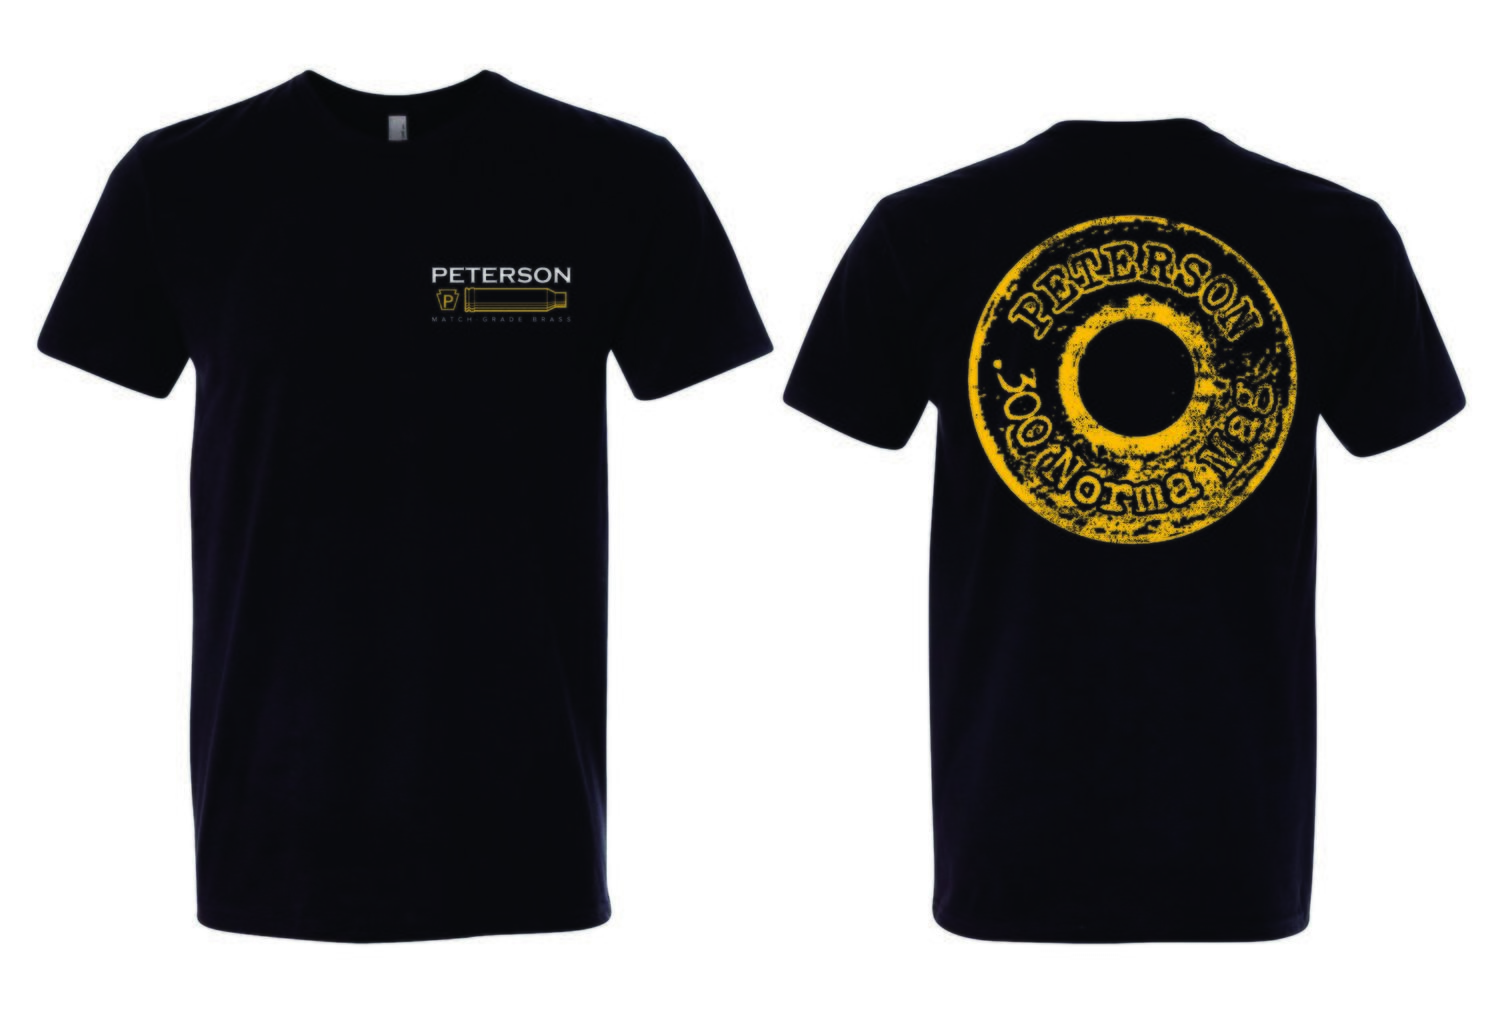 Peterson .300 Norma Mag Headstamp Tee